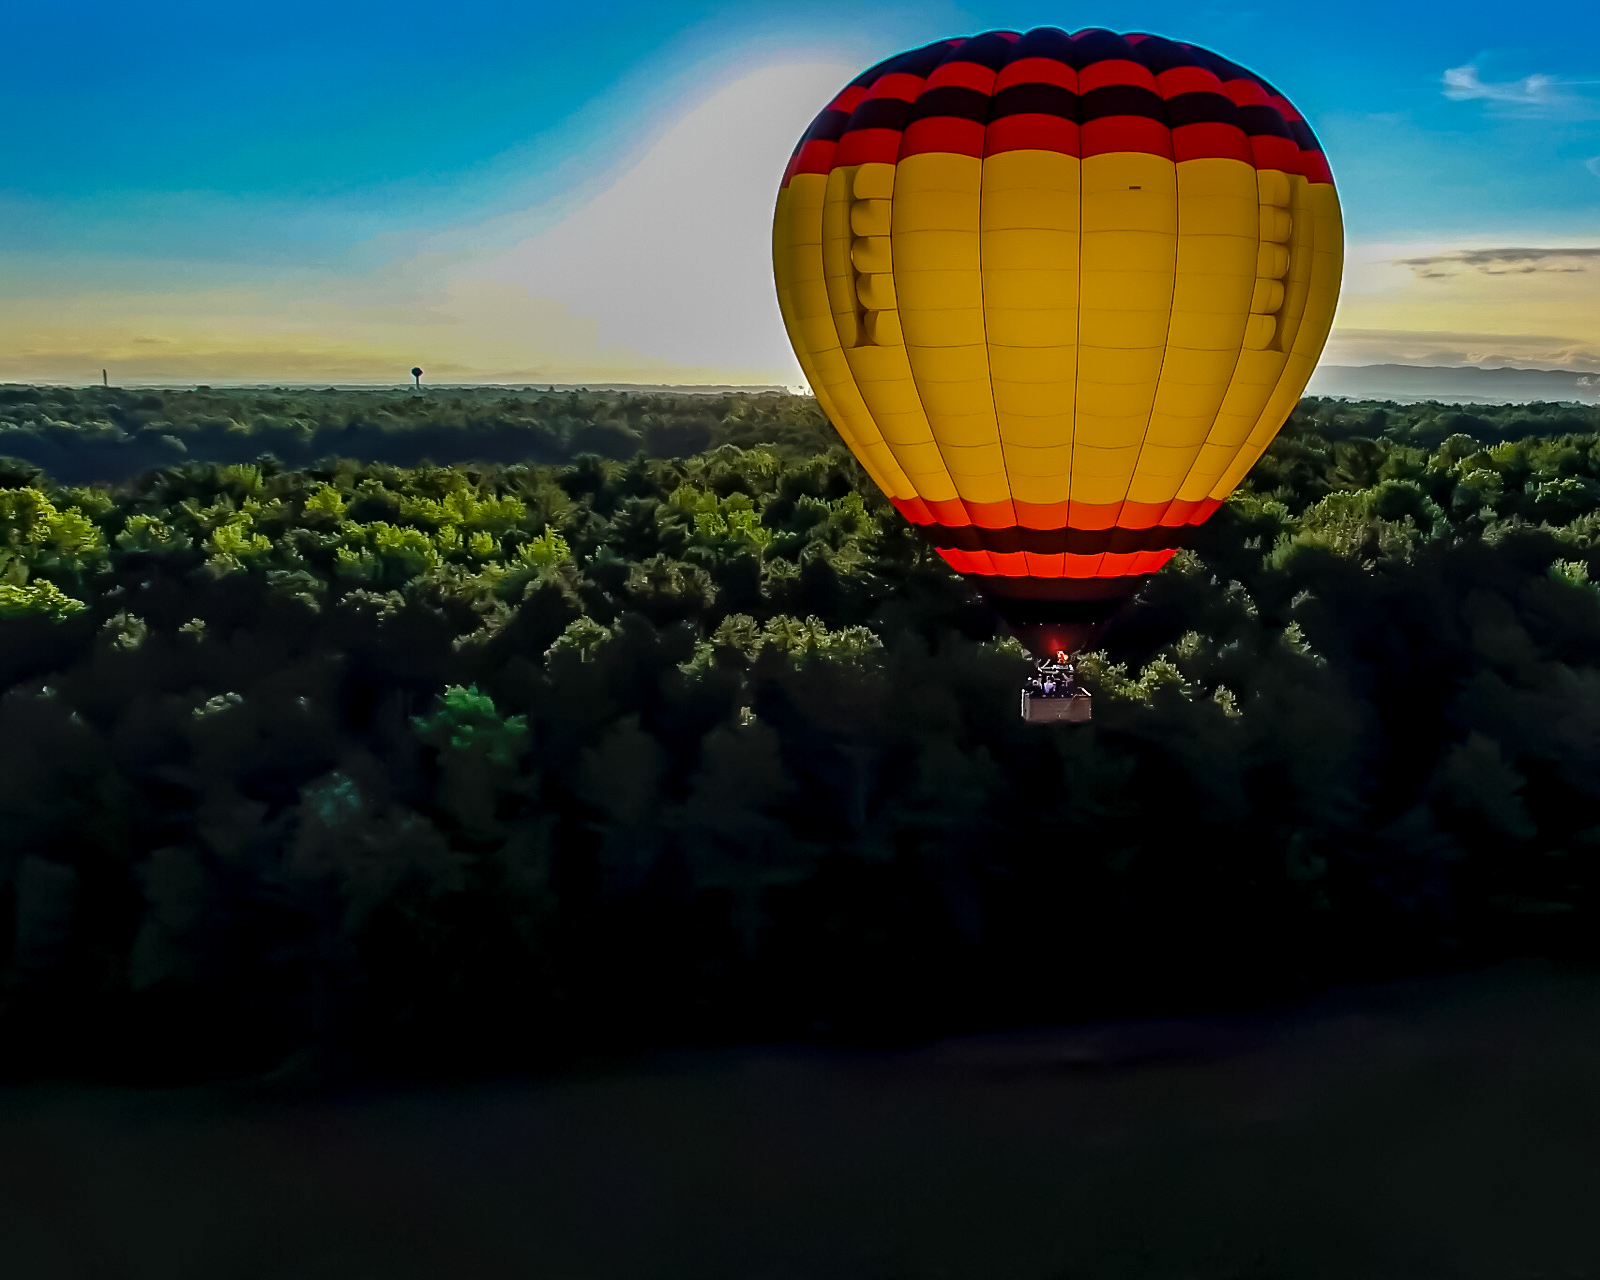 Owen---ADK-Balloon-Flights.jpg